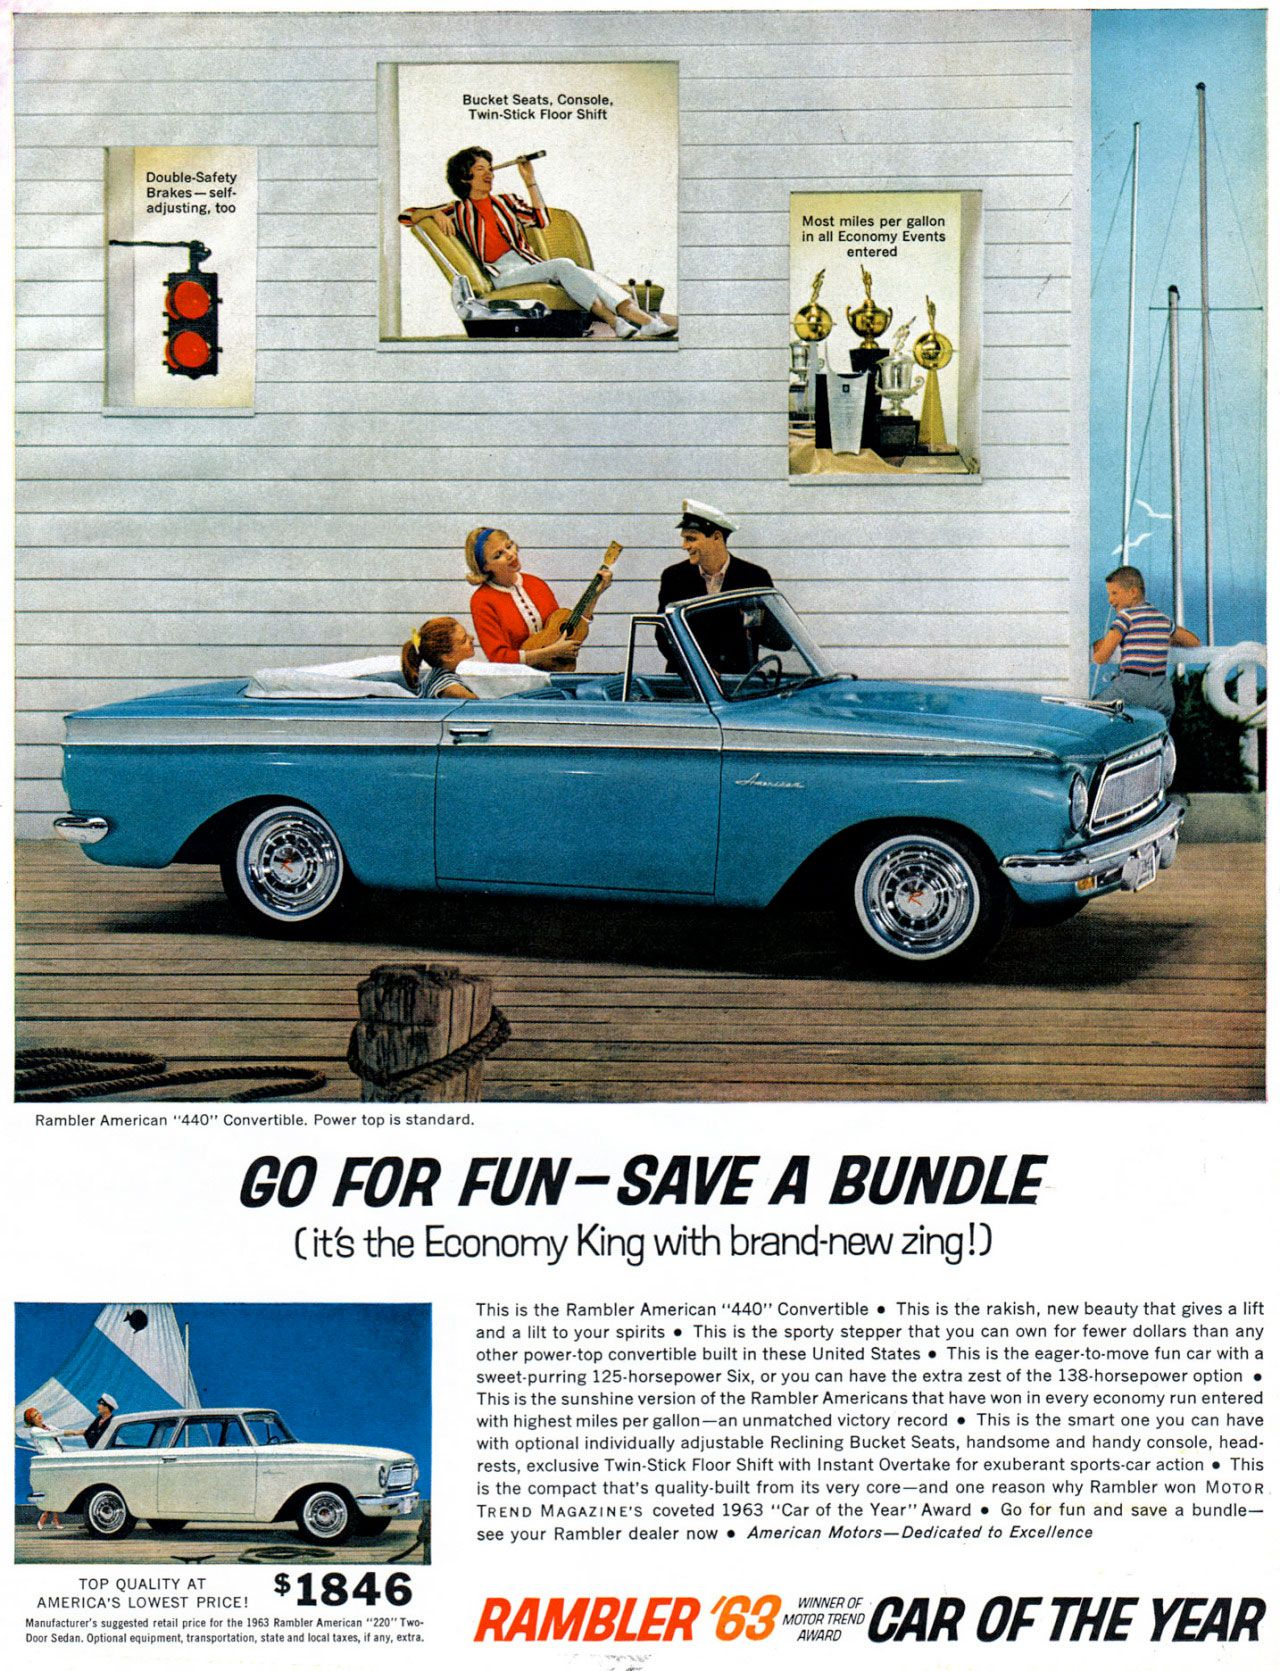 The American Motors Rambler 440 Convertible. Go for fun. Save a bundle (it's the Economy King with brand-new zing!).